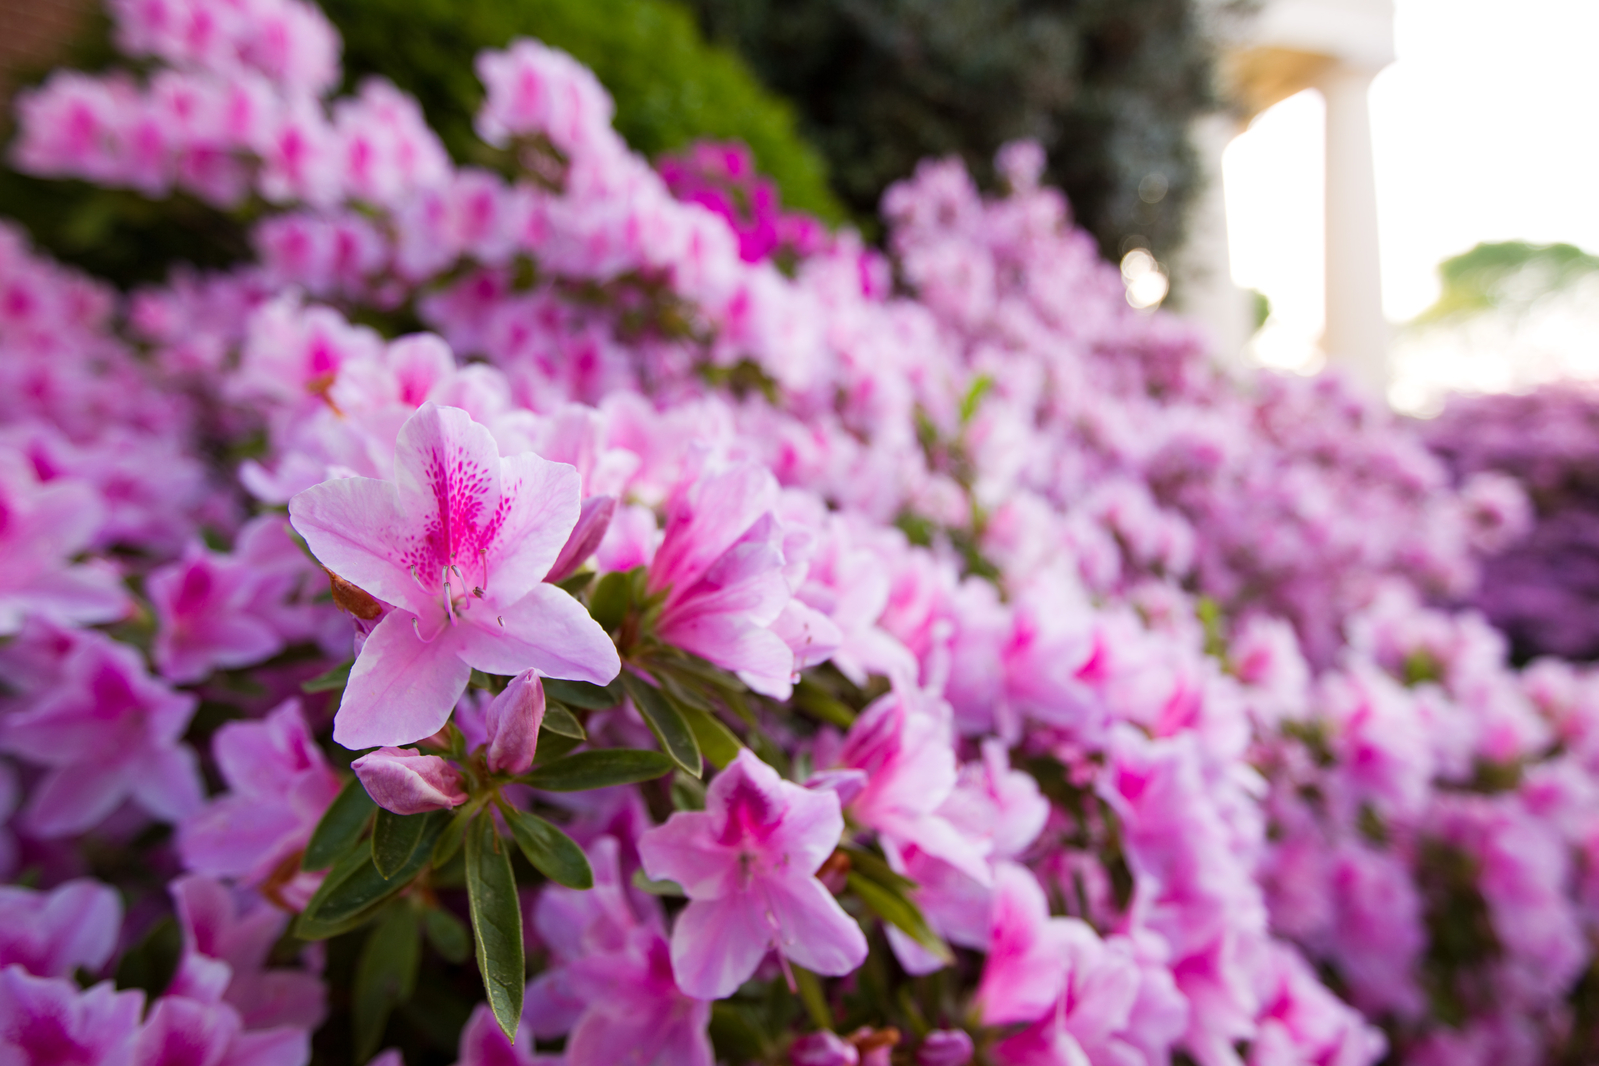 azaleas, flowers, over watering, hybrids, gardening, garden, dormant, bloom, plant, pink, pruning